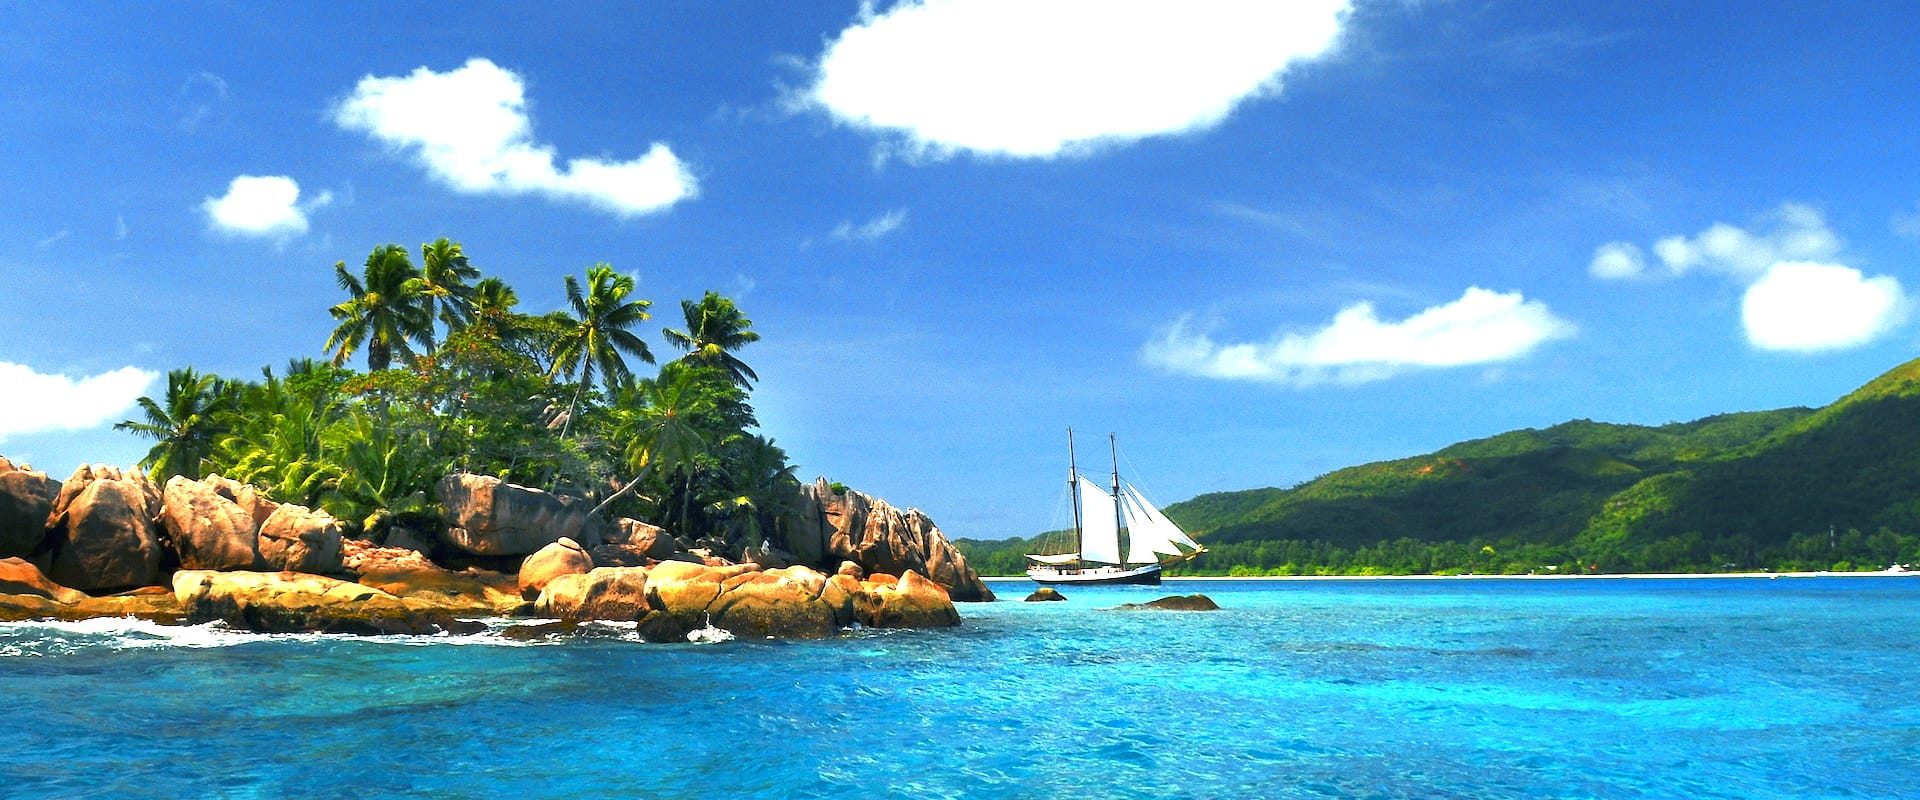 4 Liveaboards in Seychelles - LiveAboard.com